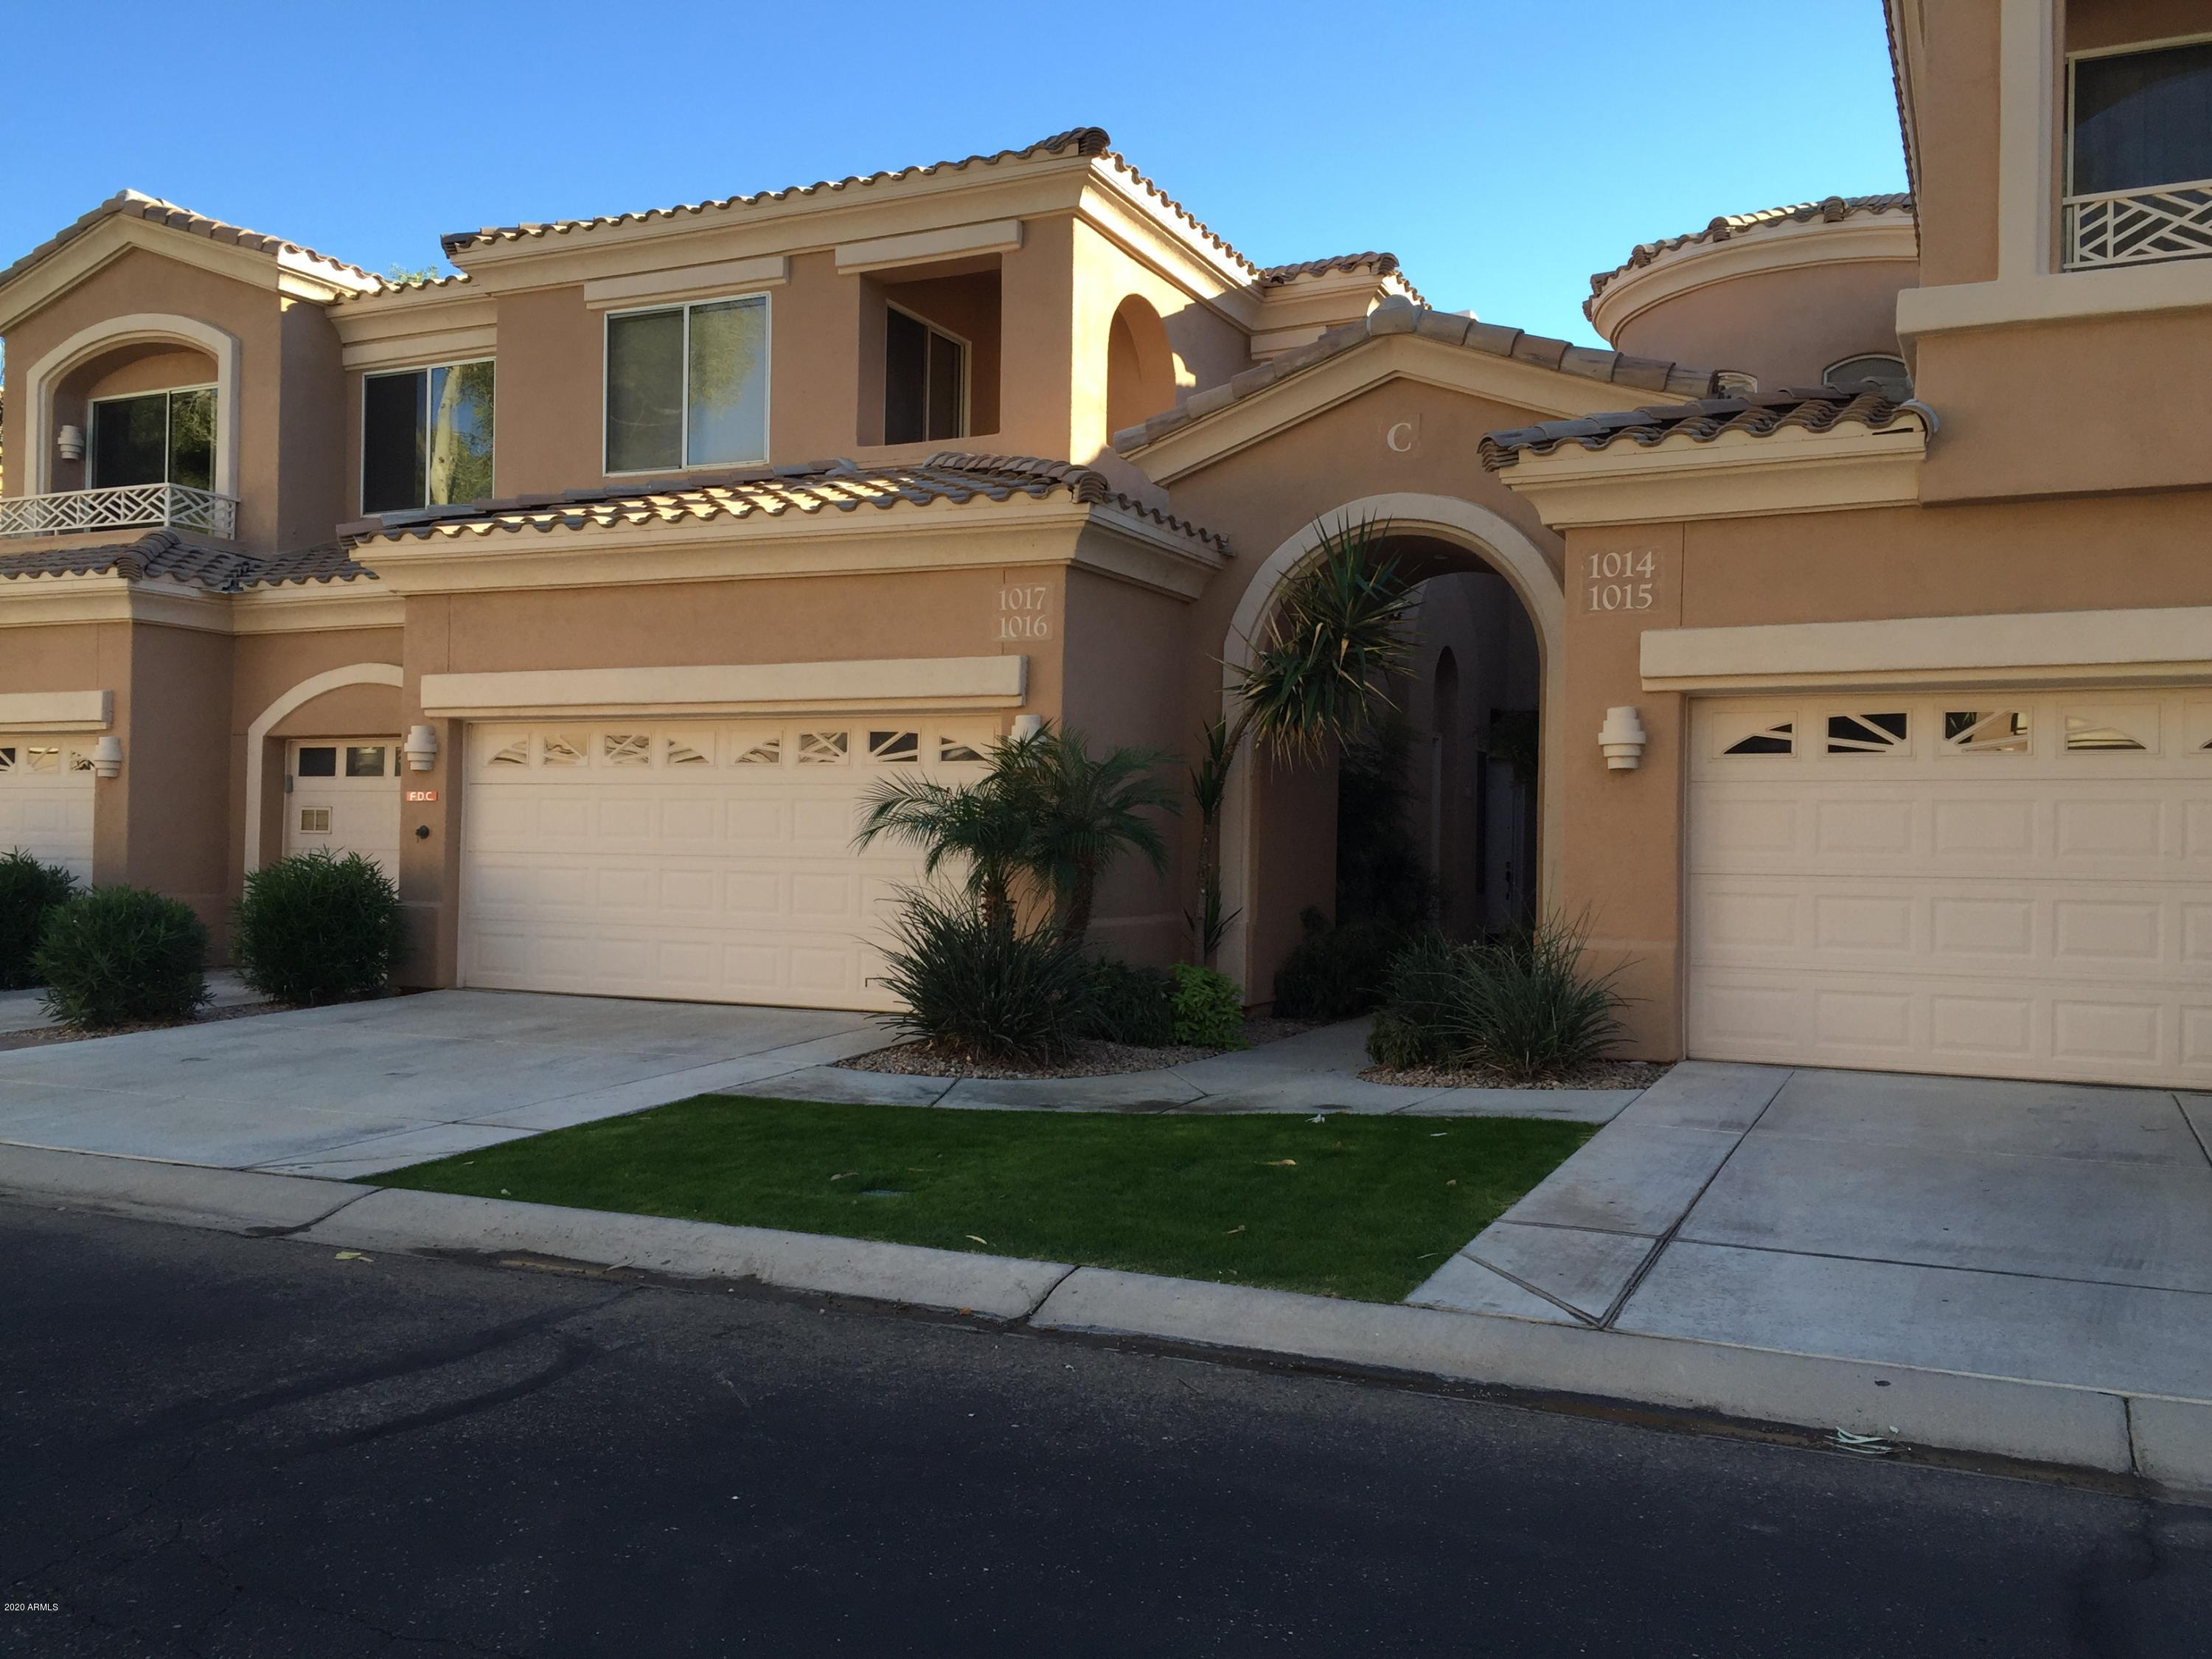 MLS 6074972 3800 S CANTABRIA Circle Unit 1044, Chandler, AZ 85248 Community Pools